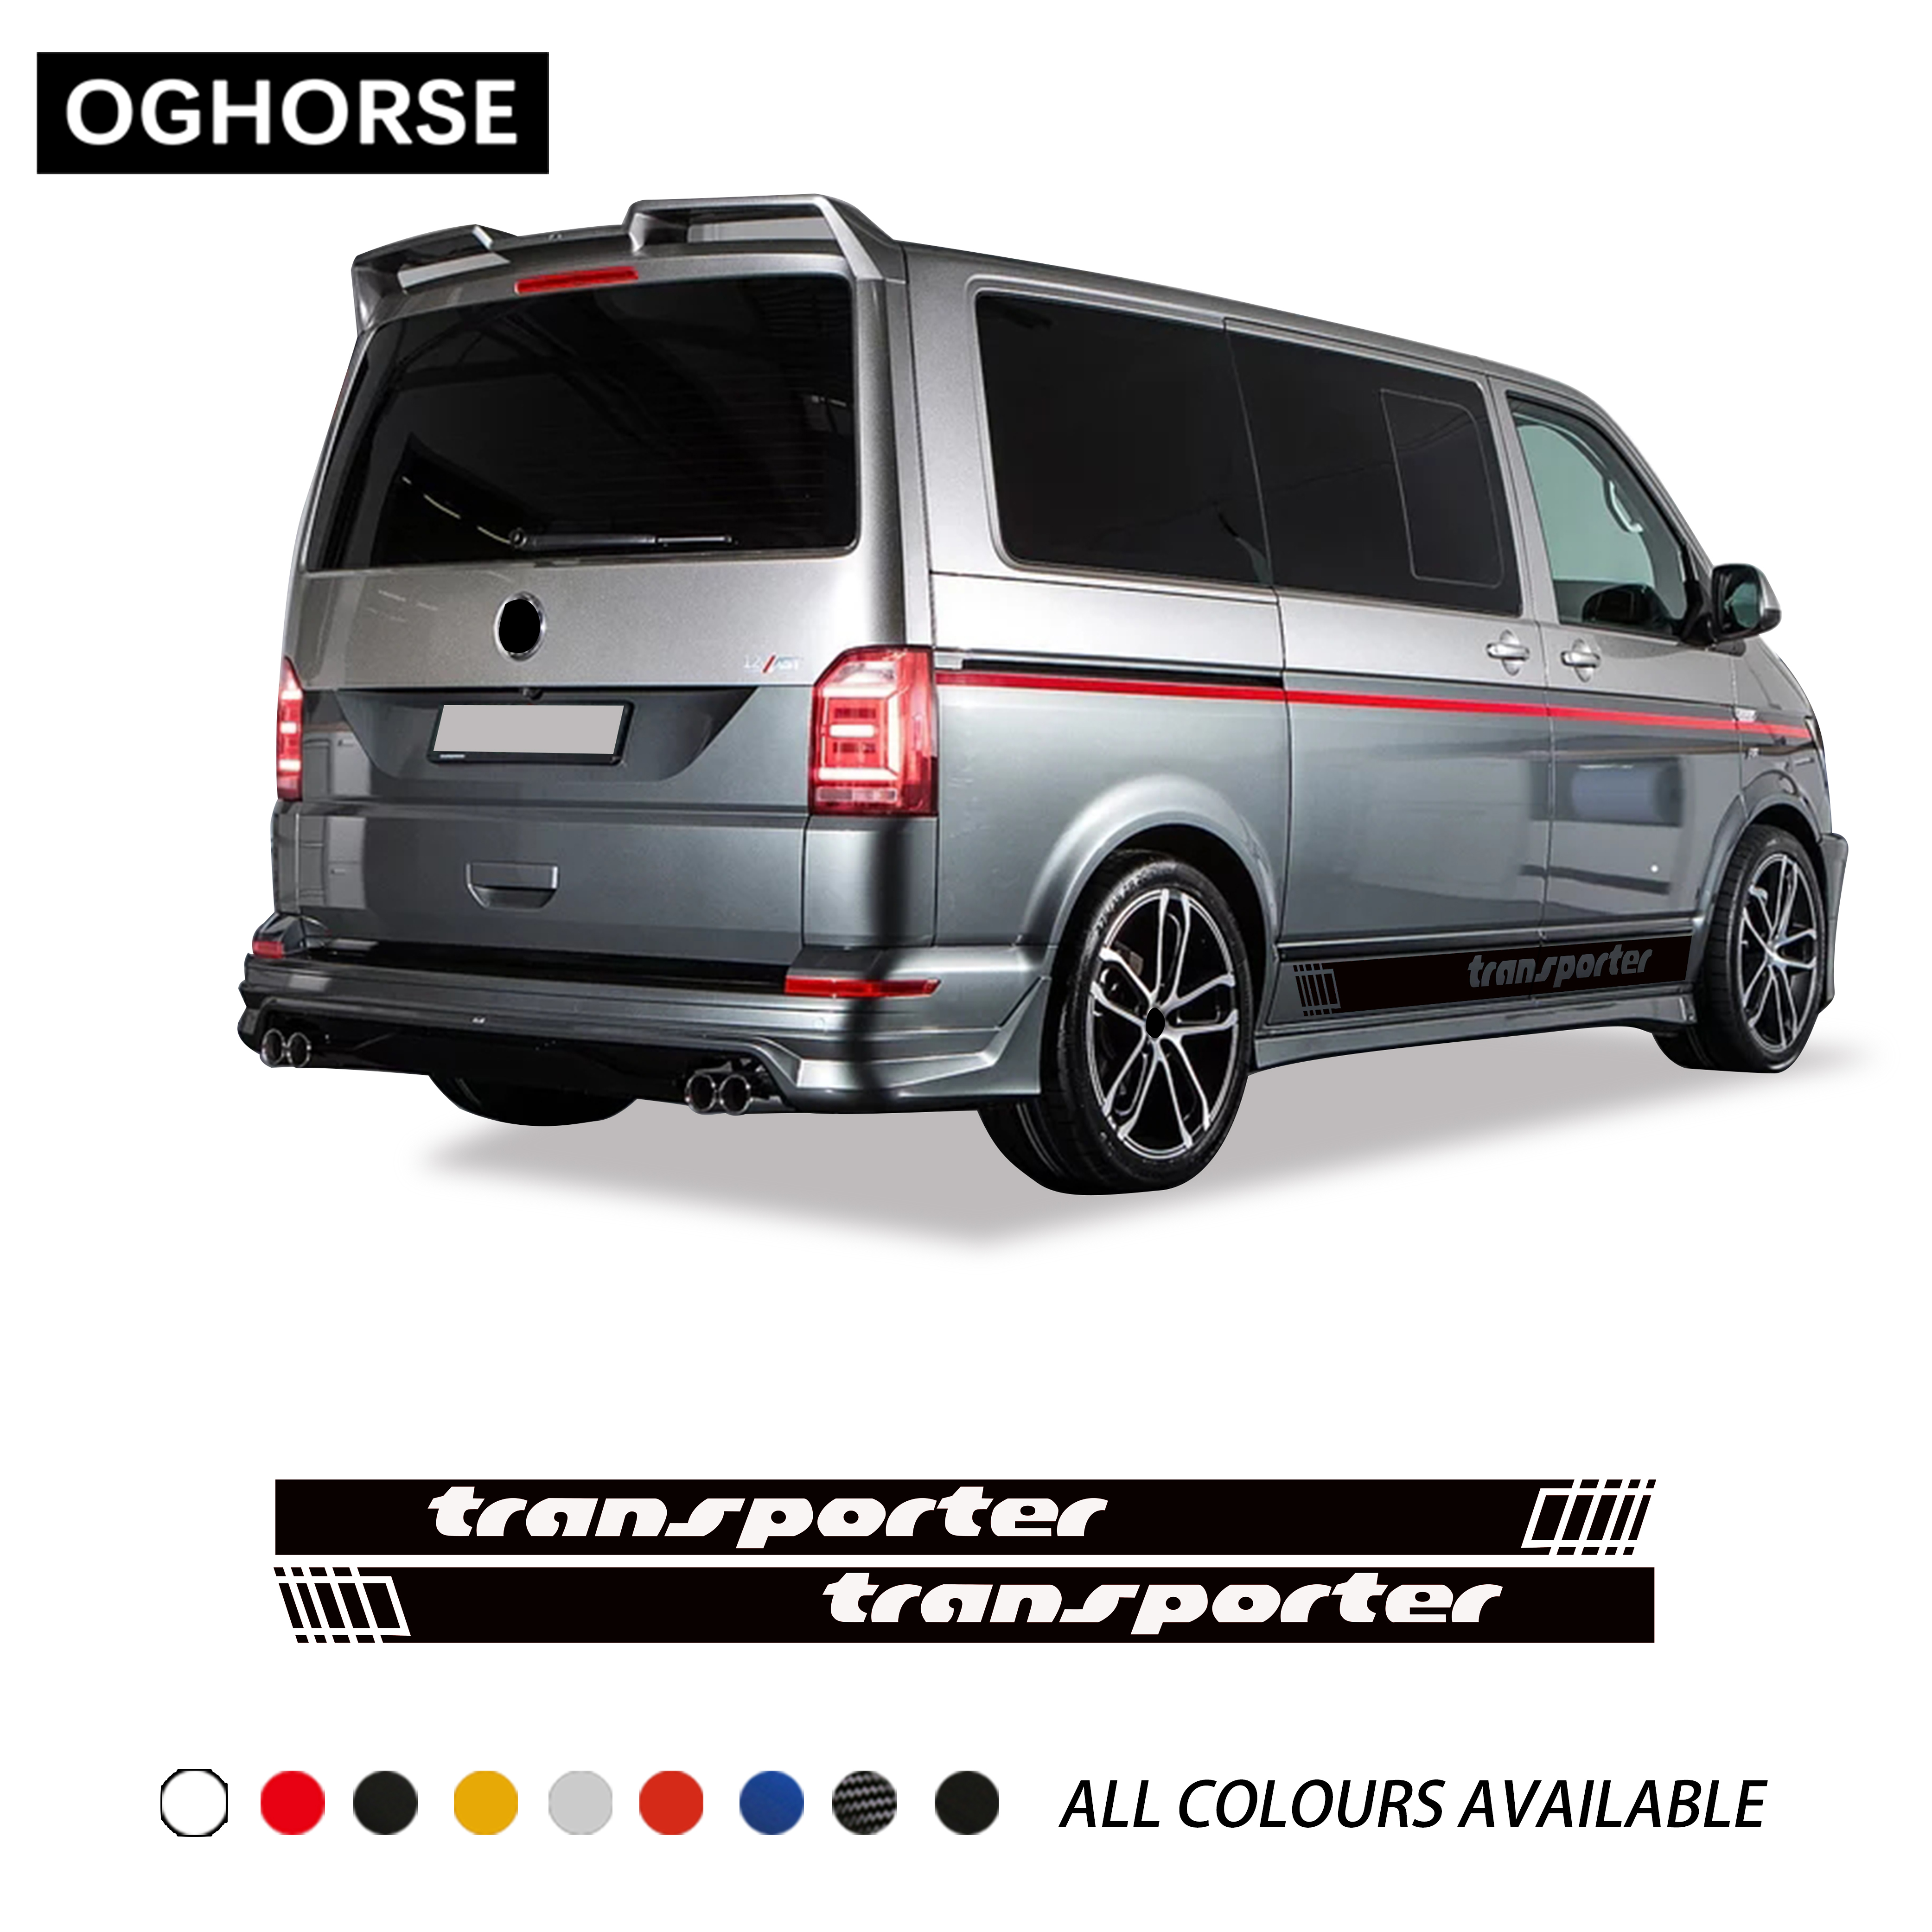 2X Door Side Stripes Skirt Sticker Racing Stripes Graphics Body Decal For Volkswagen TRANSPORTER T4 T5 T6 Accessories